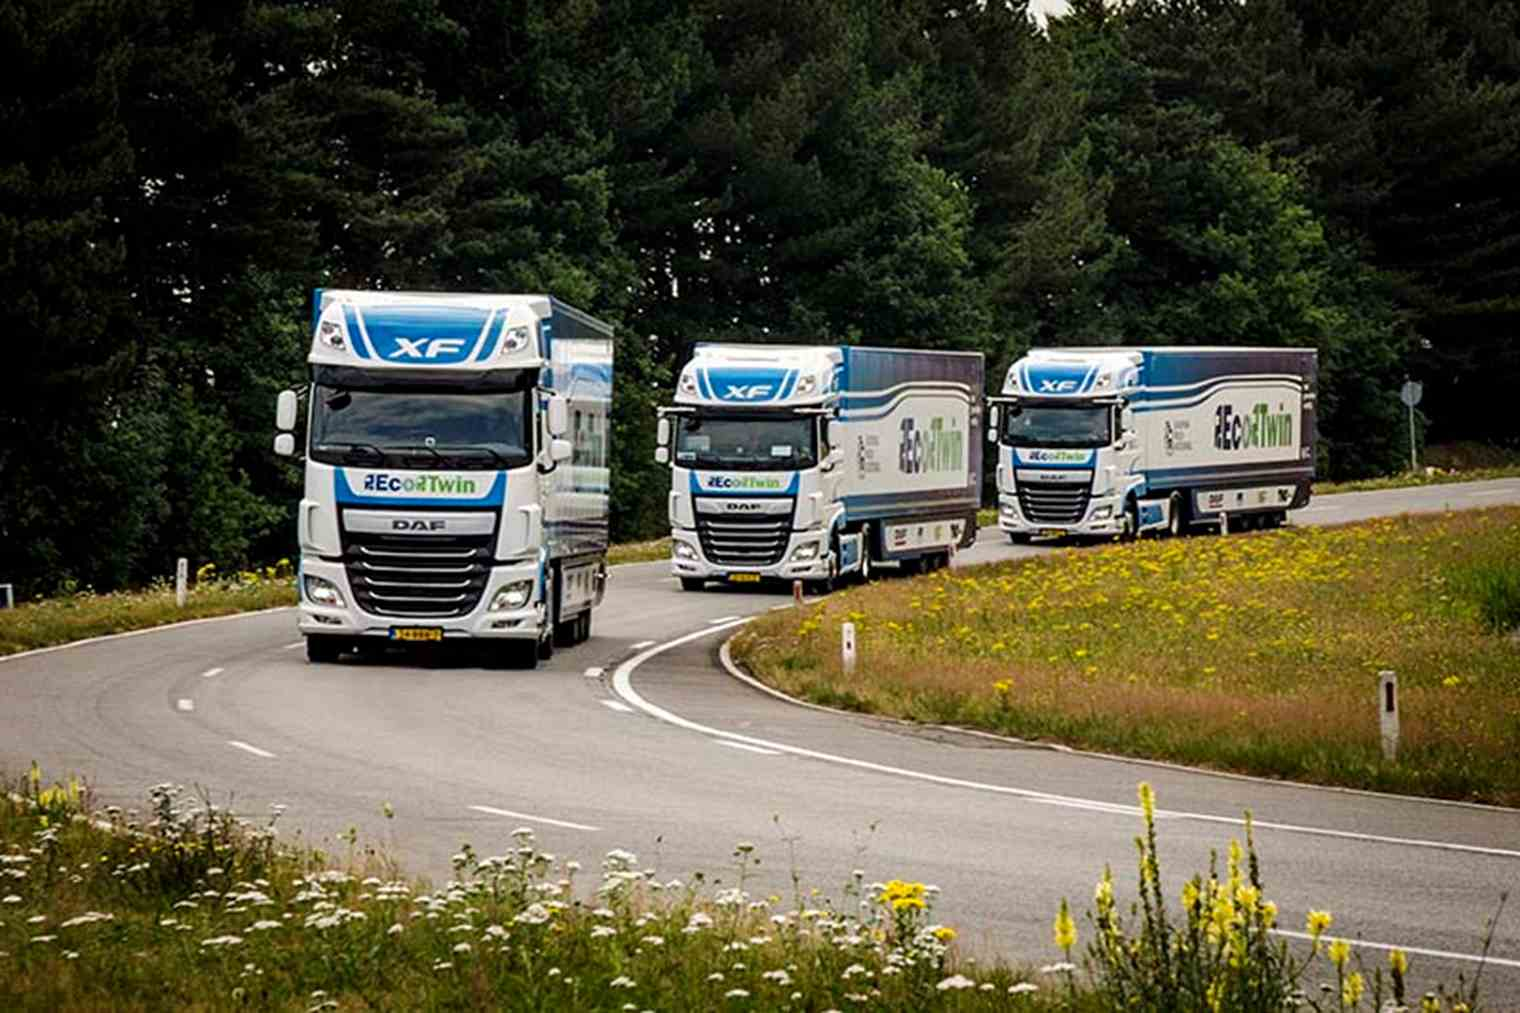 Europe Is The World Leader When It Comes To Truck Platooning In April 2016 Tno And Rijkswaterstaat